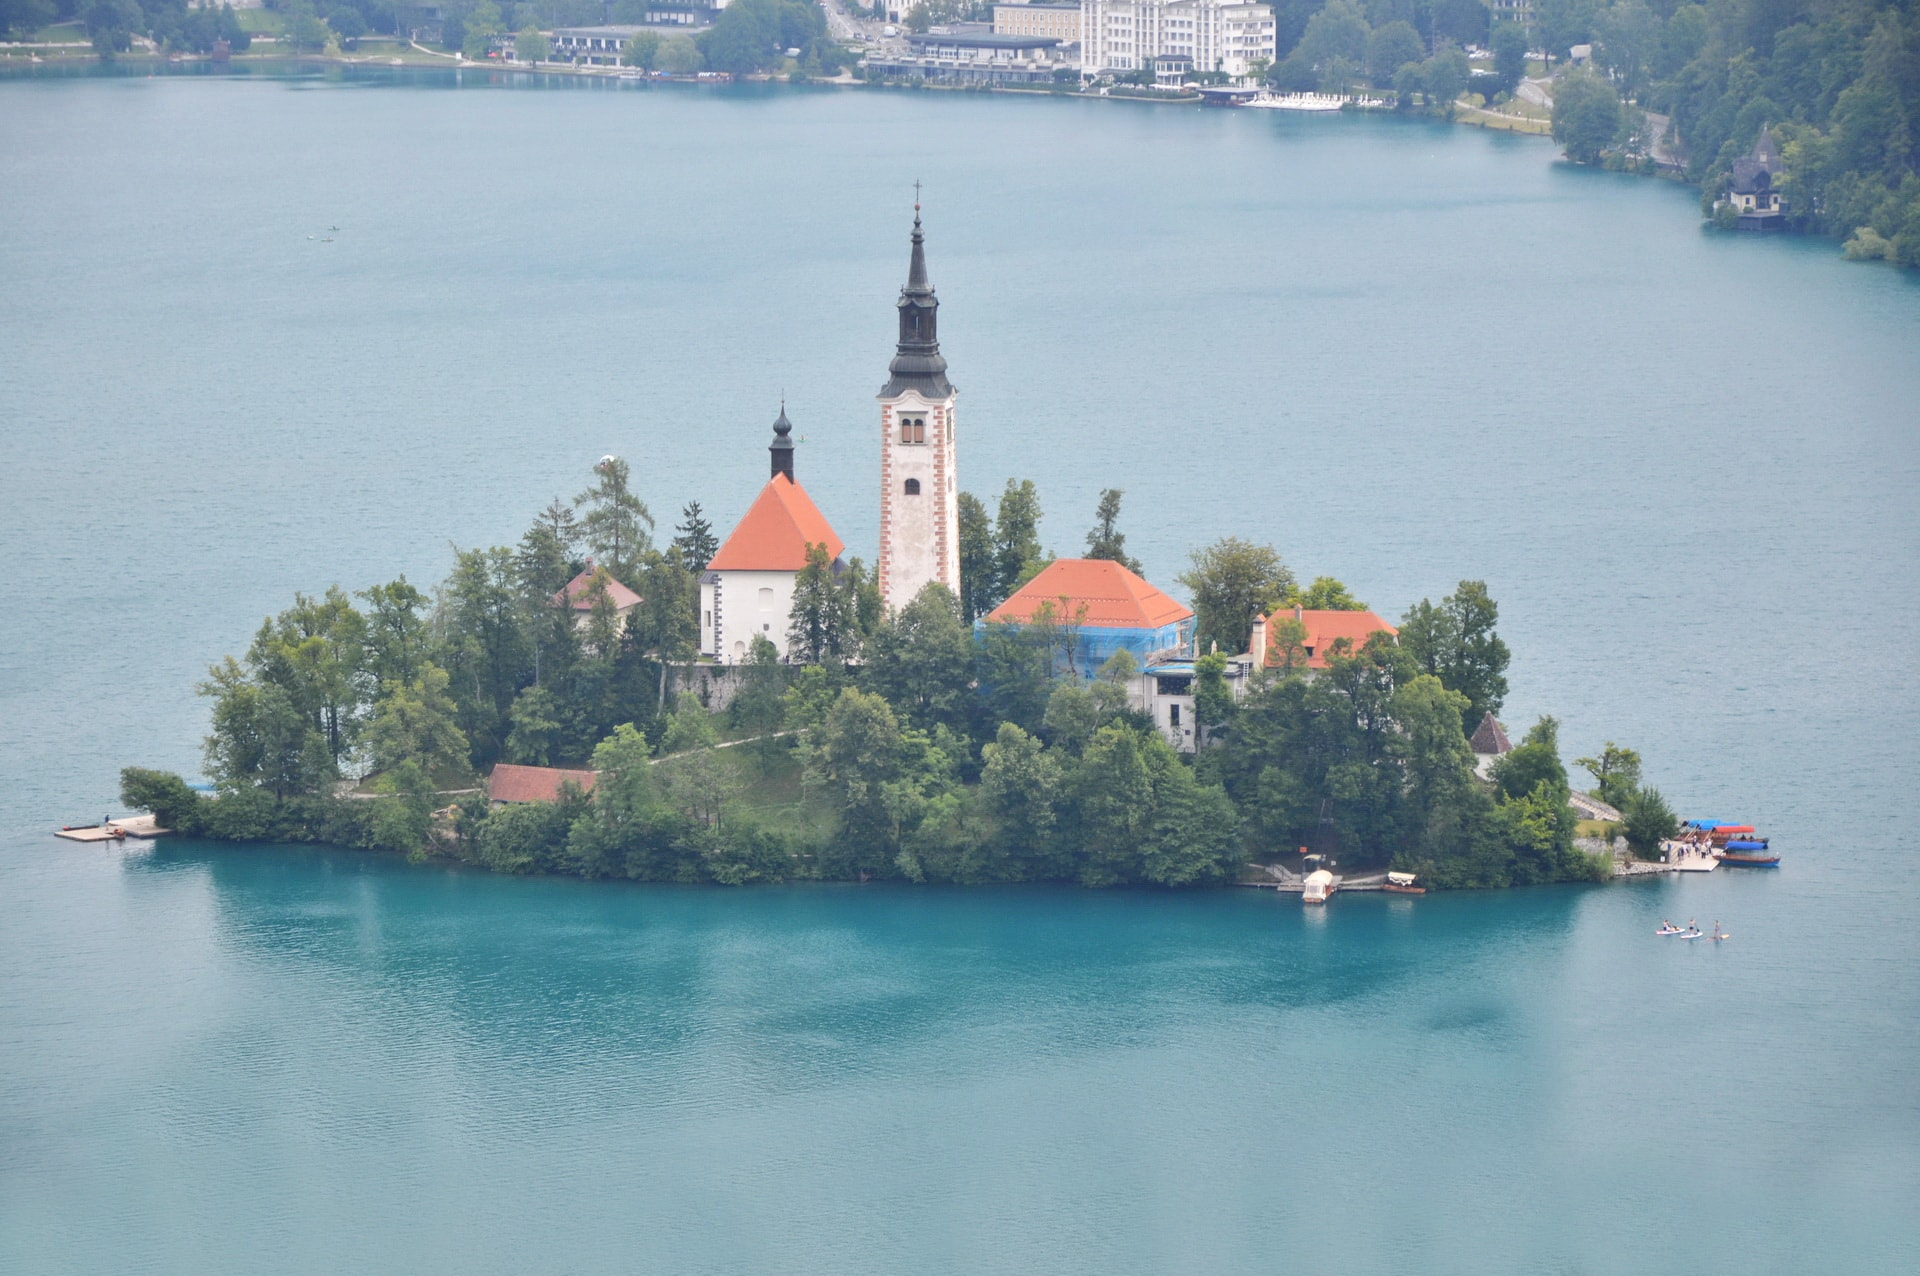 Bled Island seen from Ojstrica